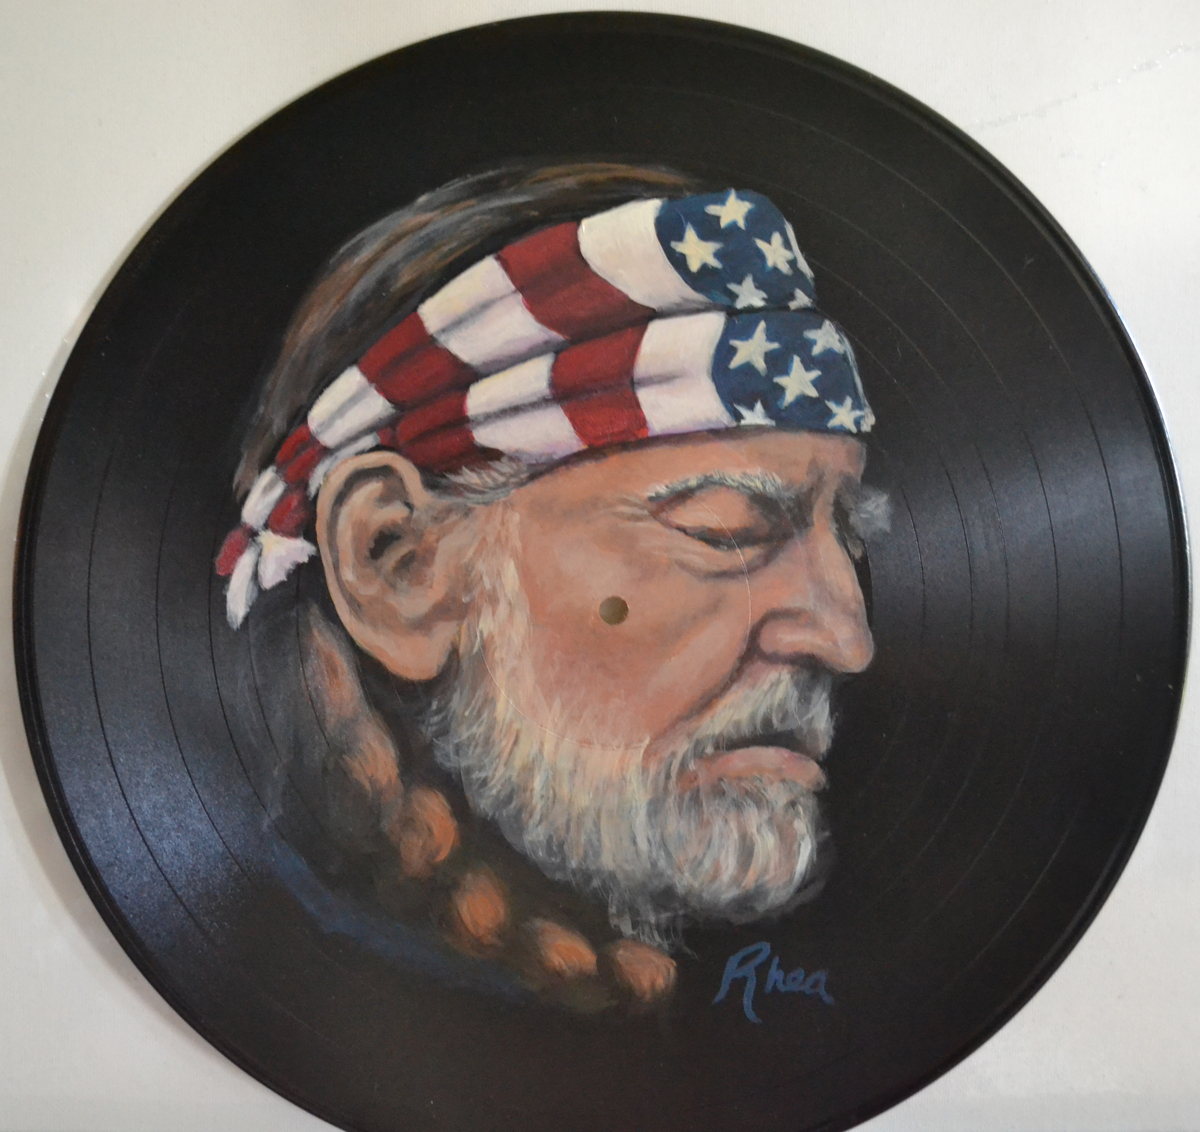 Willie Nelson (large view)